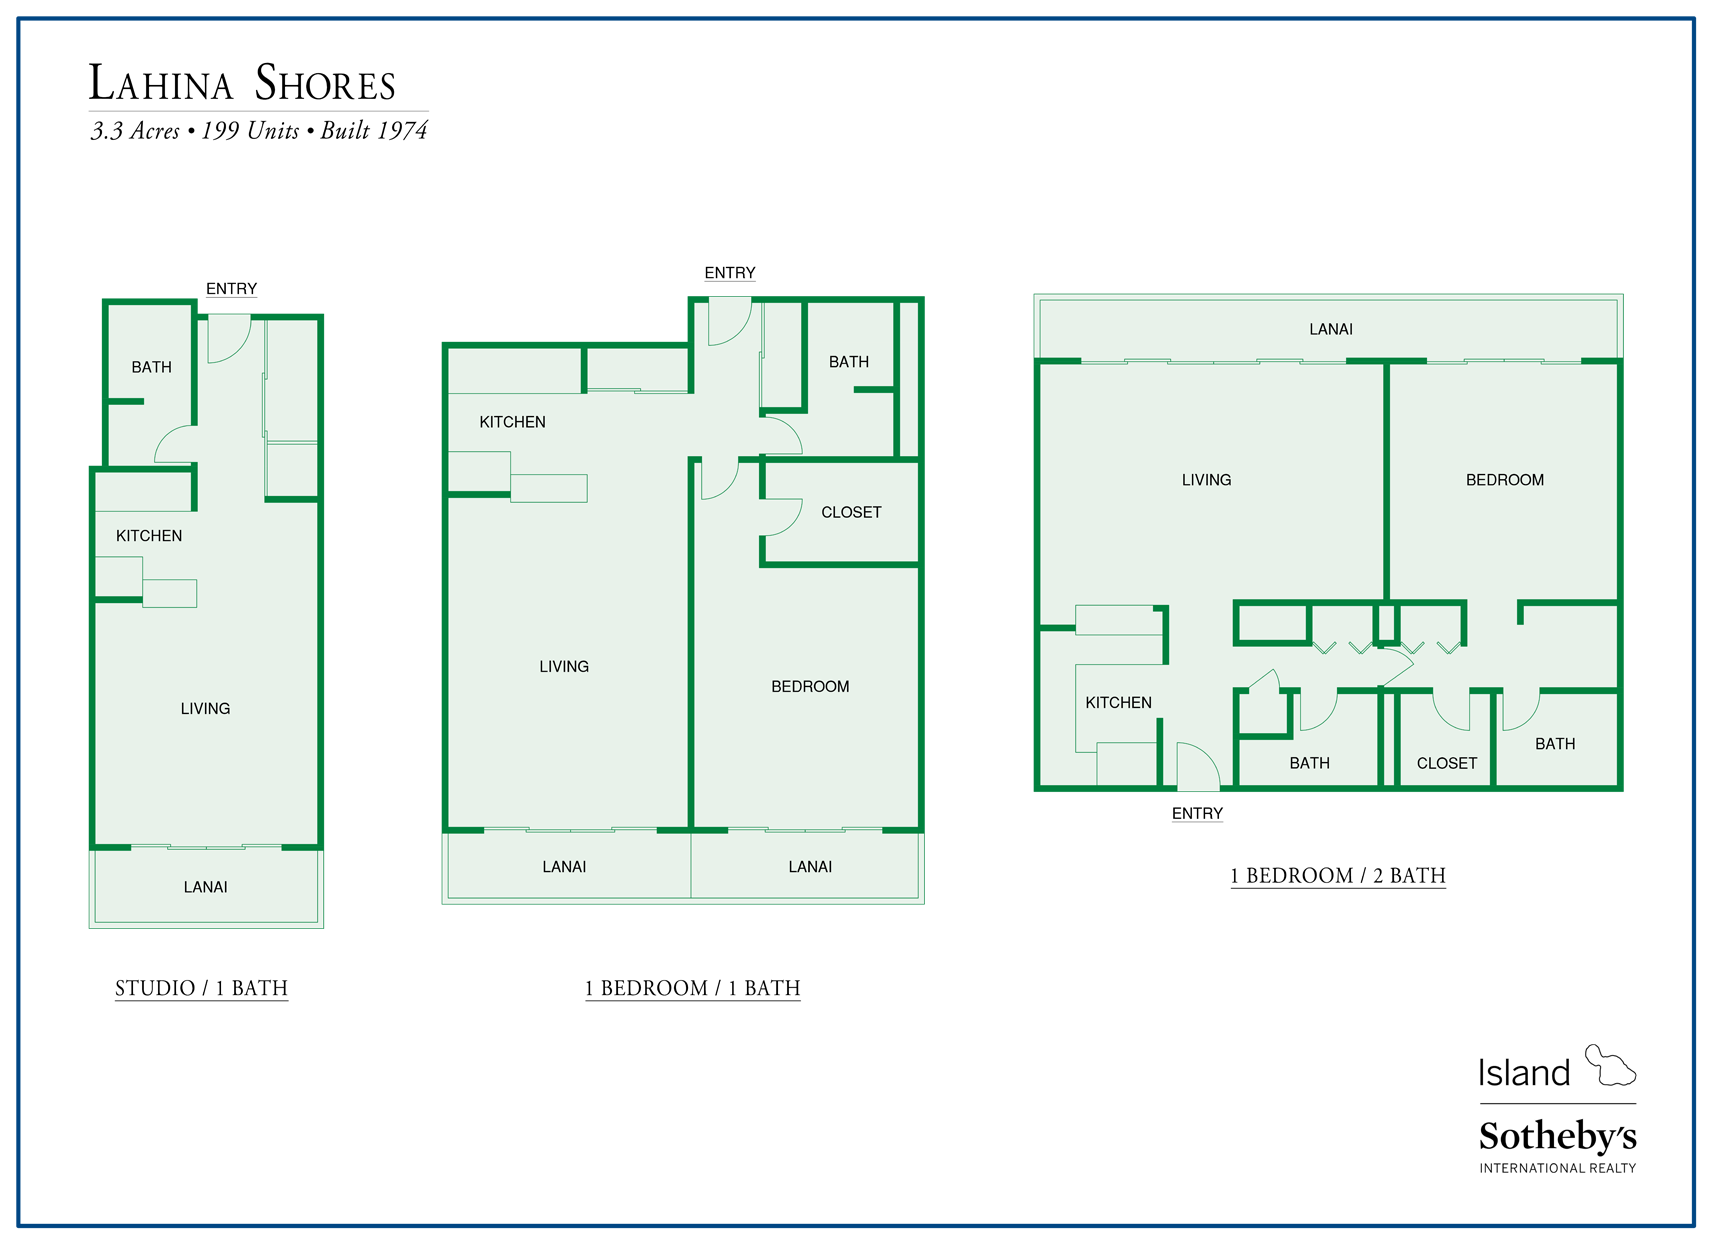 lahaina shores floor plans